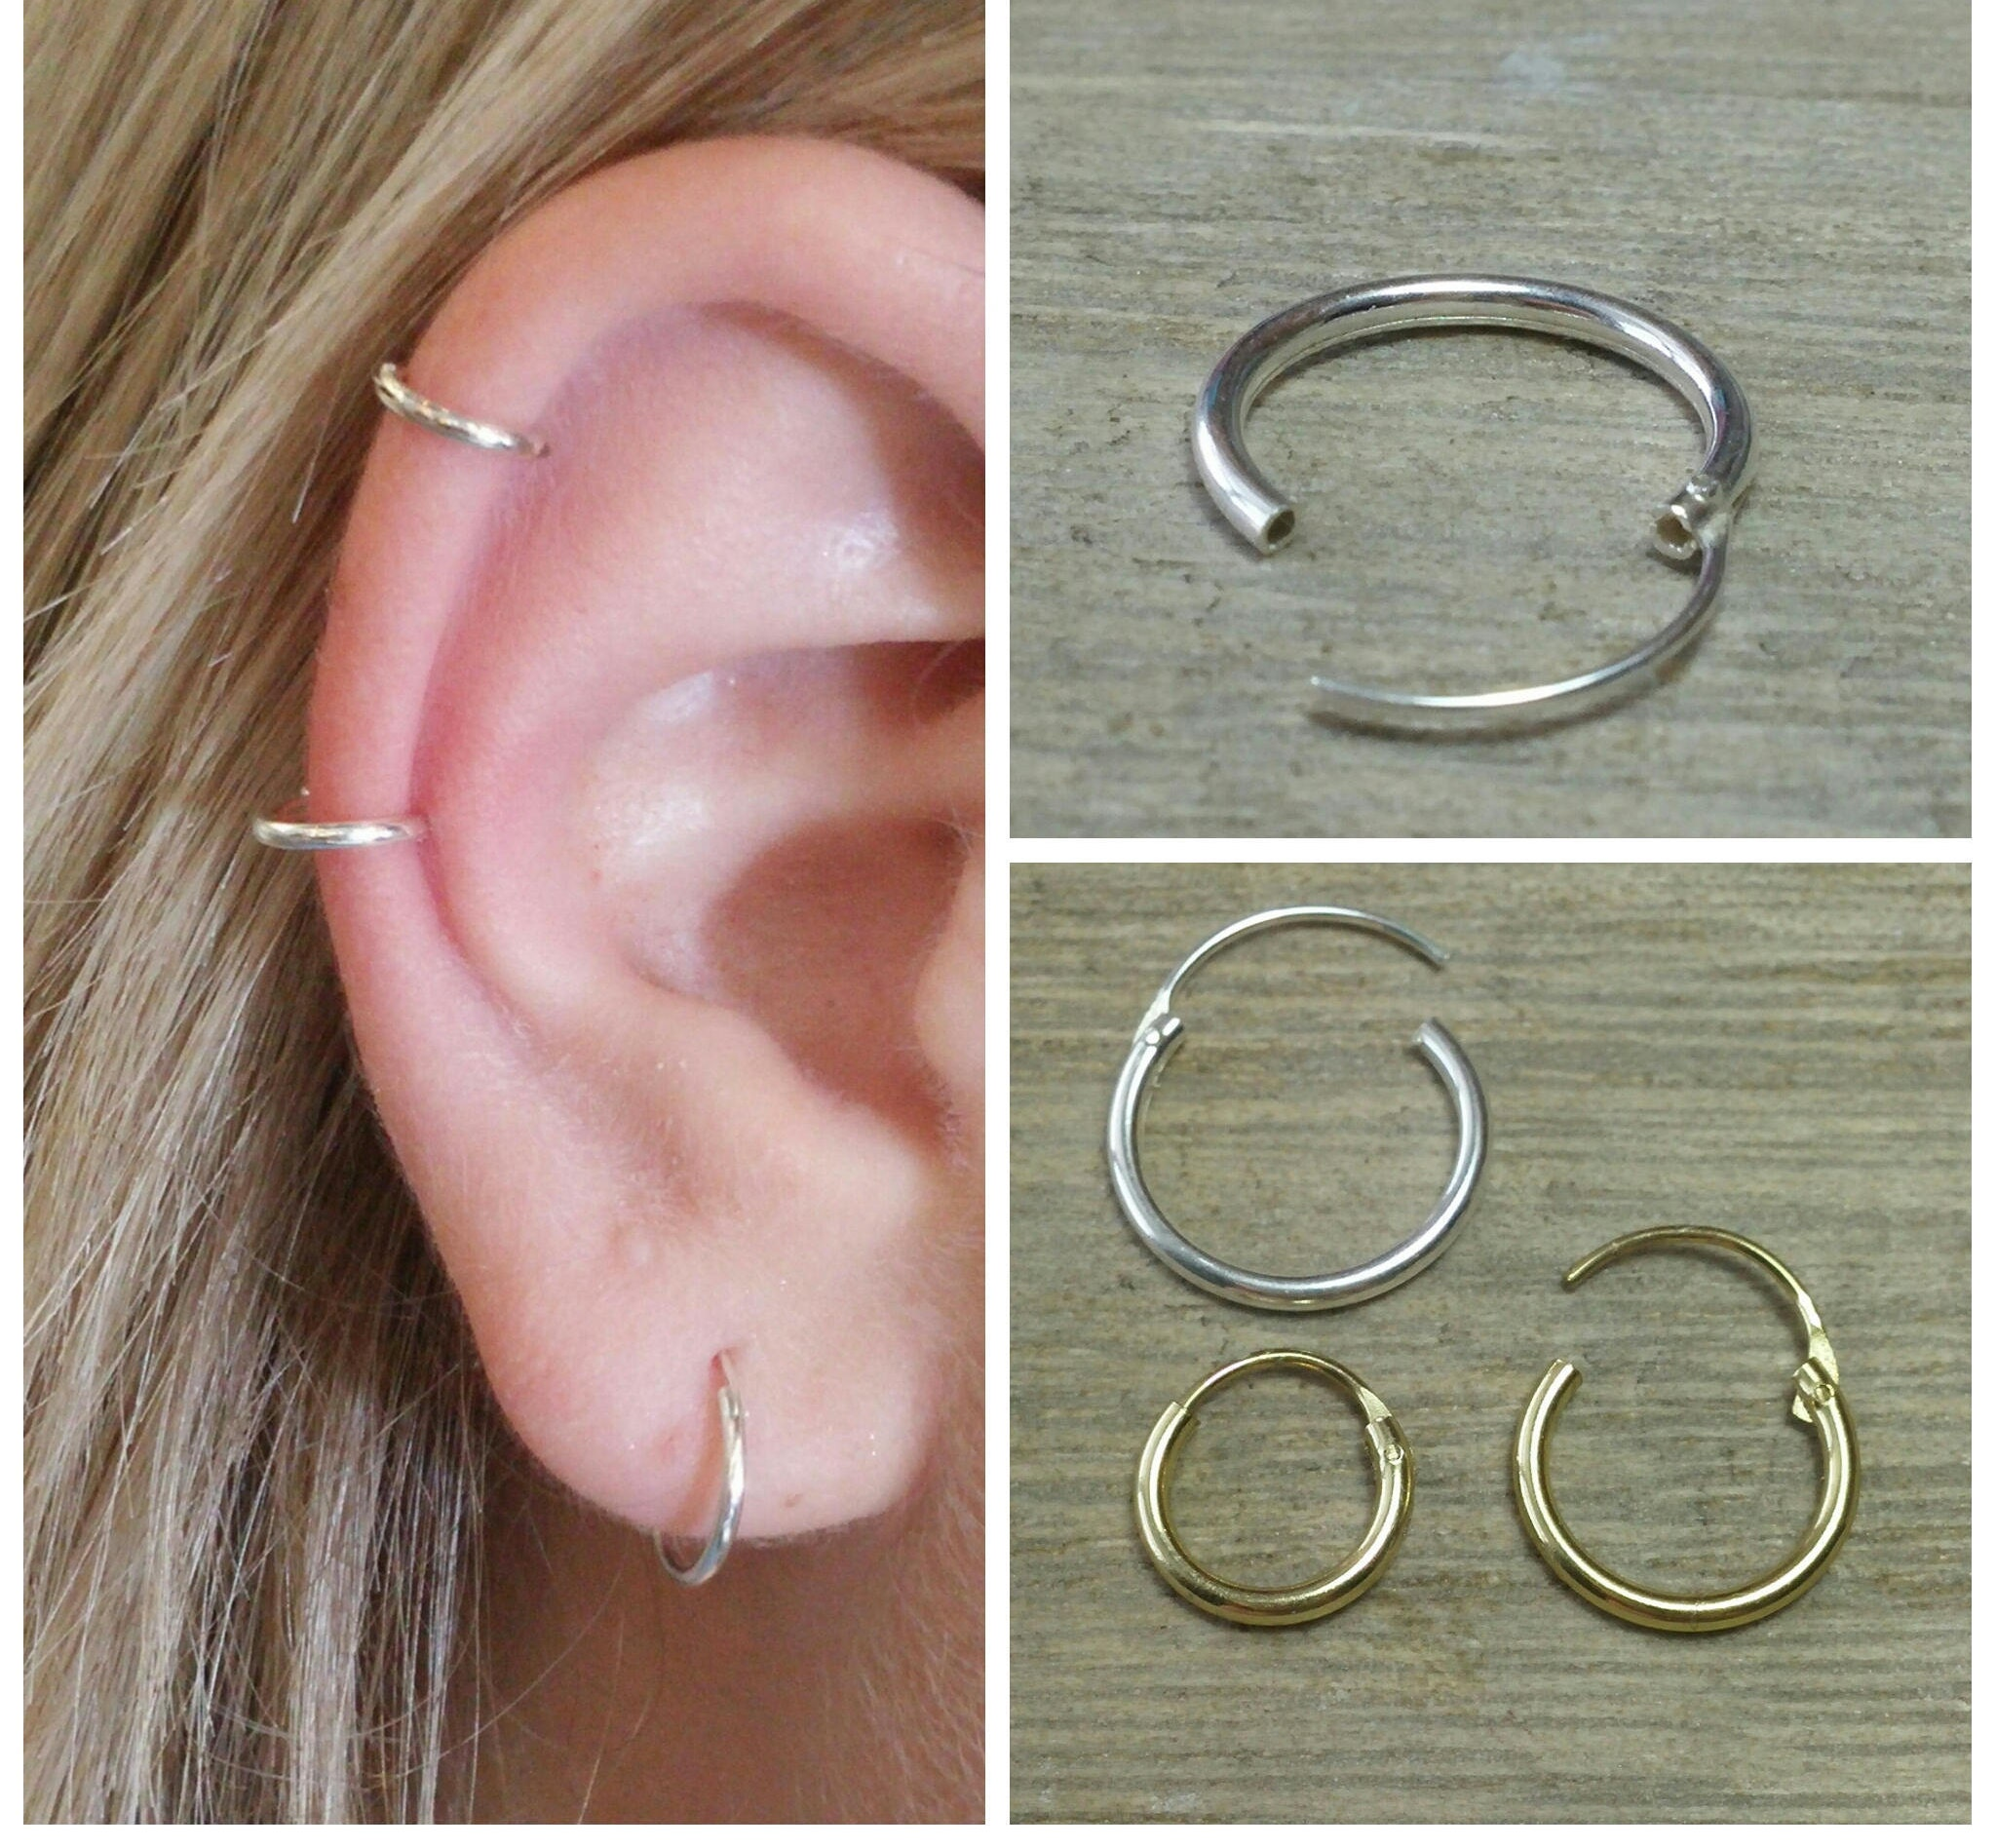 small hooped earrings cartilage hoop small hoop earrings gold hoop earrings 7981